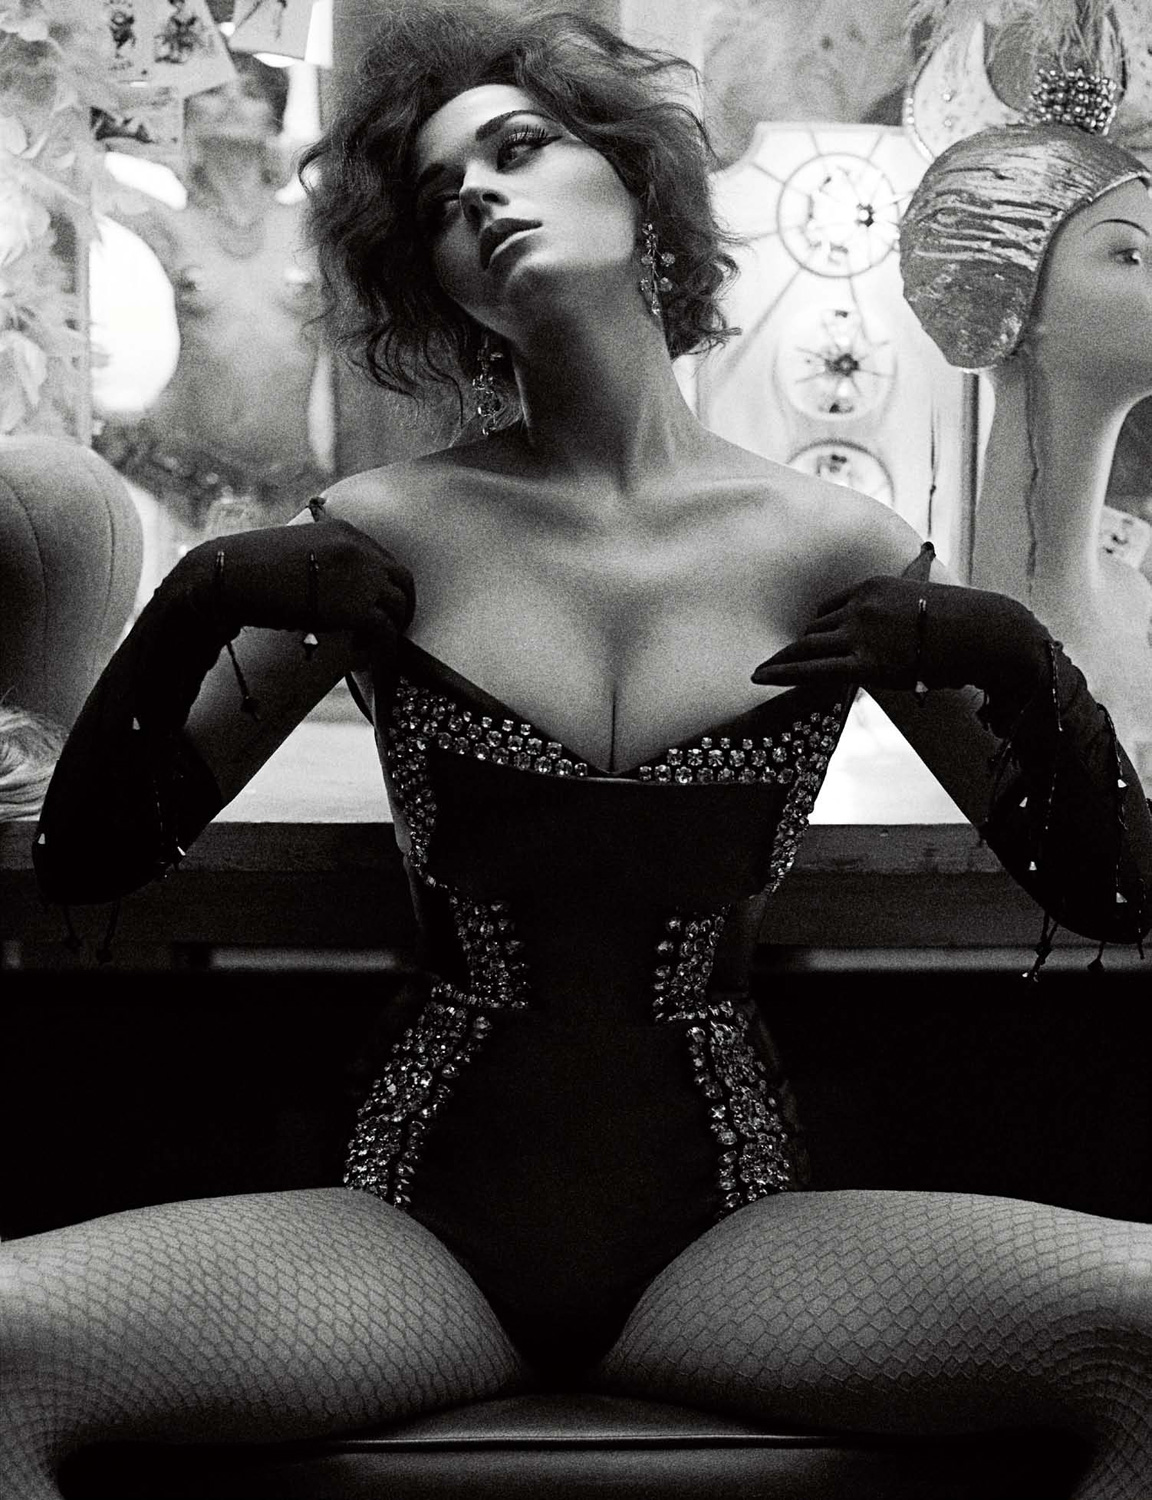 kperryinte2rview Hot Shots:  Katy Perry Poses It Up For Interview Magazine